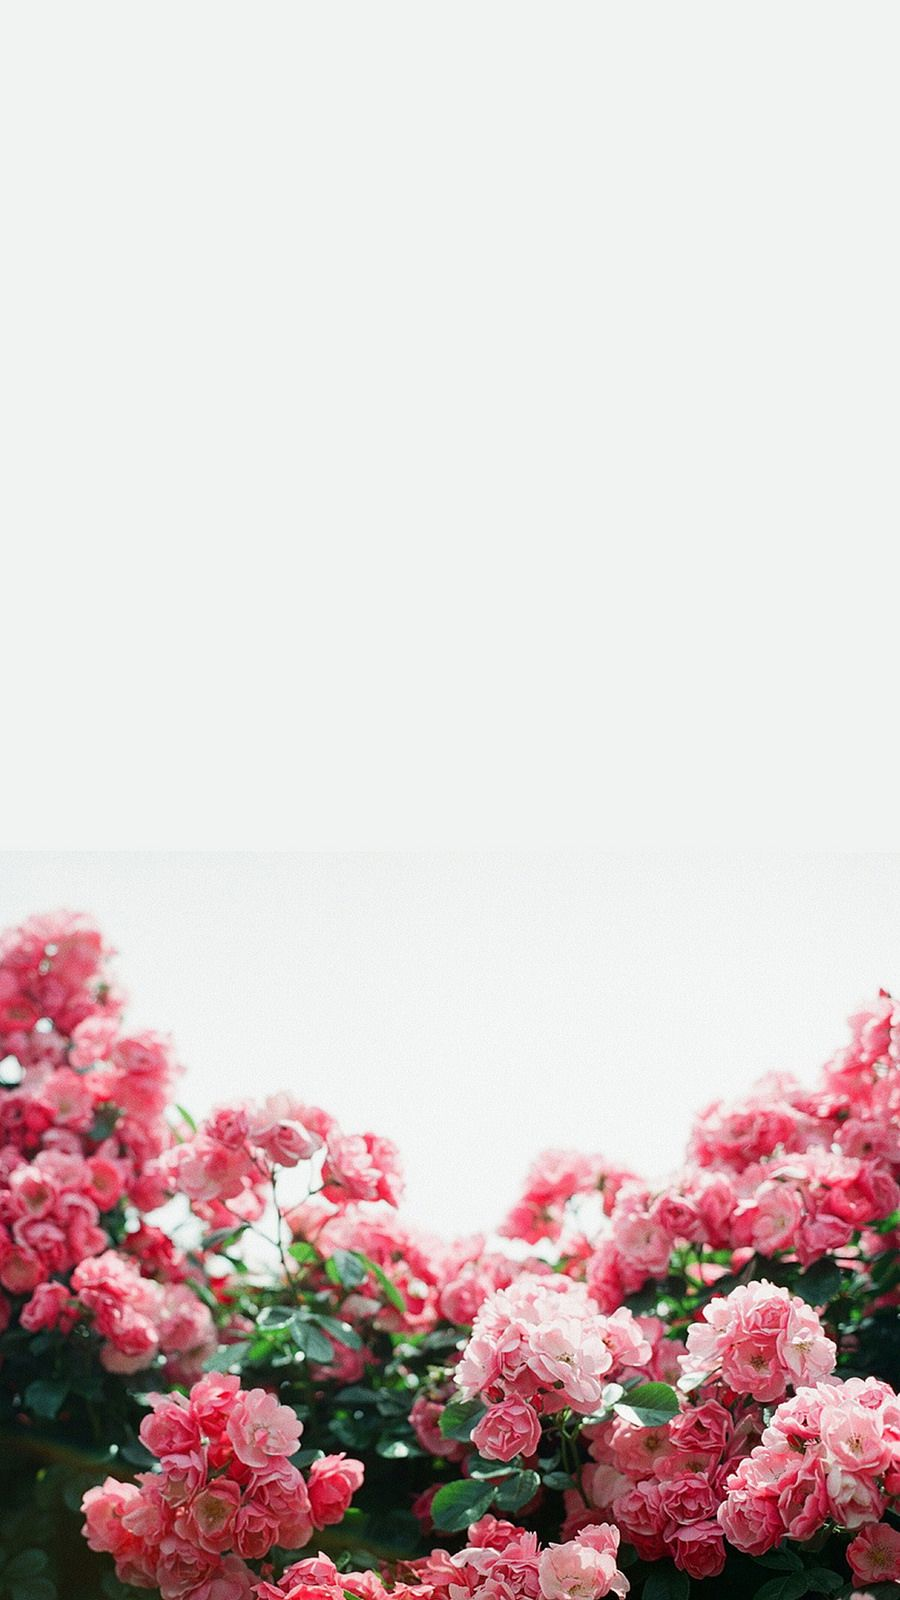 iphone background flowers white pink floral flowers border frame iphone phone 11620